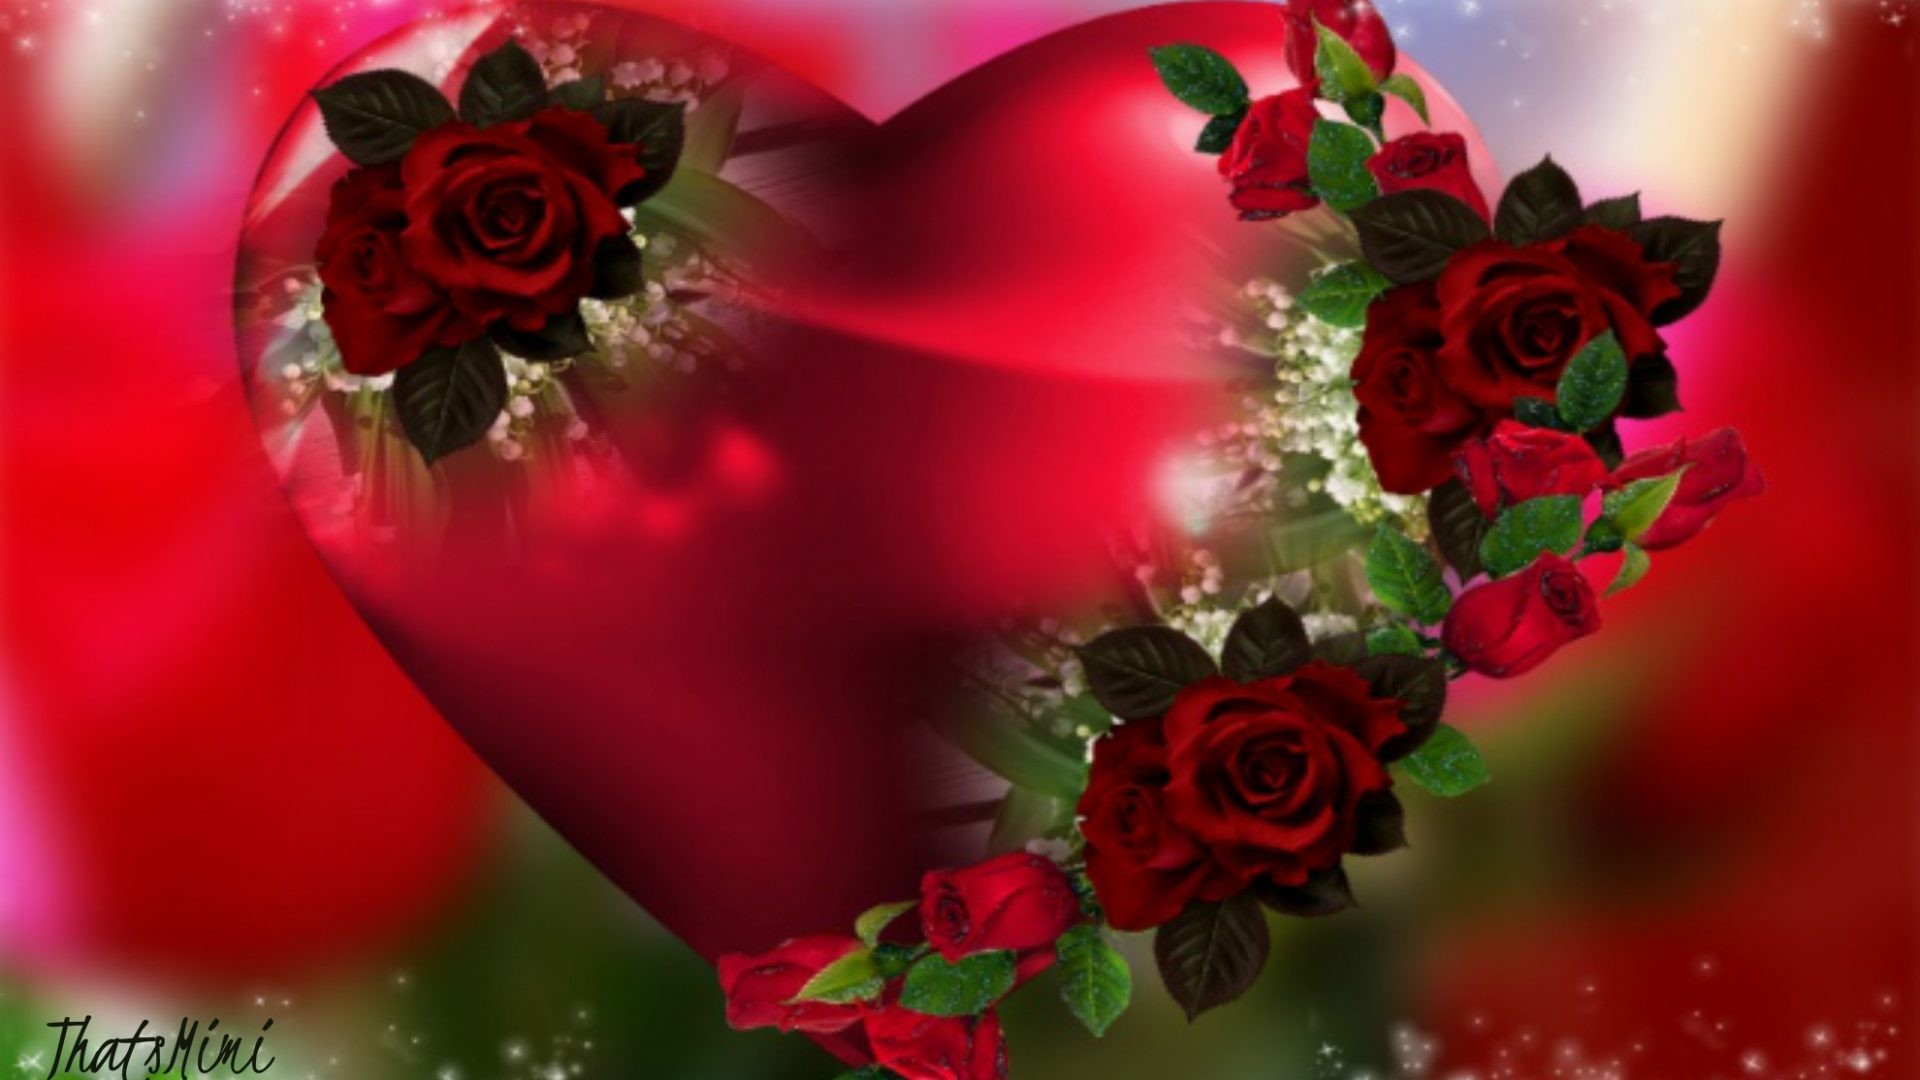 1920x1080 Heart Tag - Heart Flower Valentine Beautiful Romantic Roses Pretty Red Love  Flowers Wallpapers New for